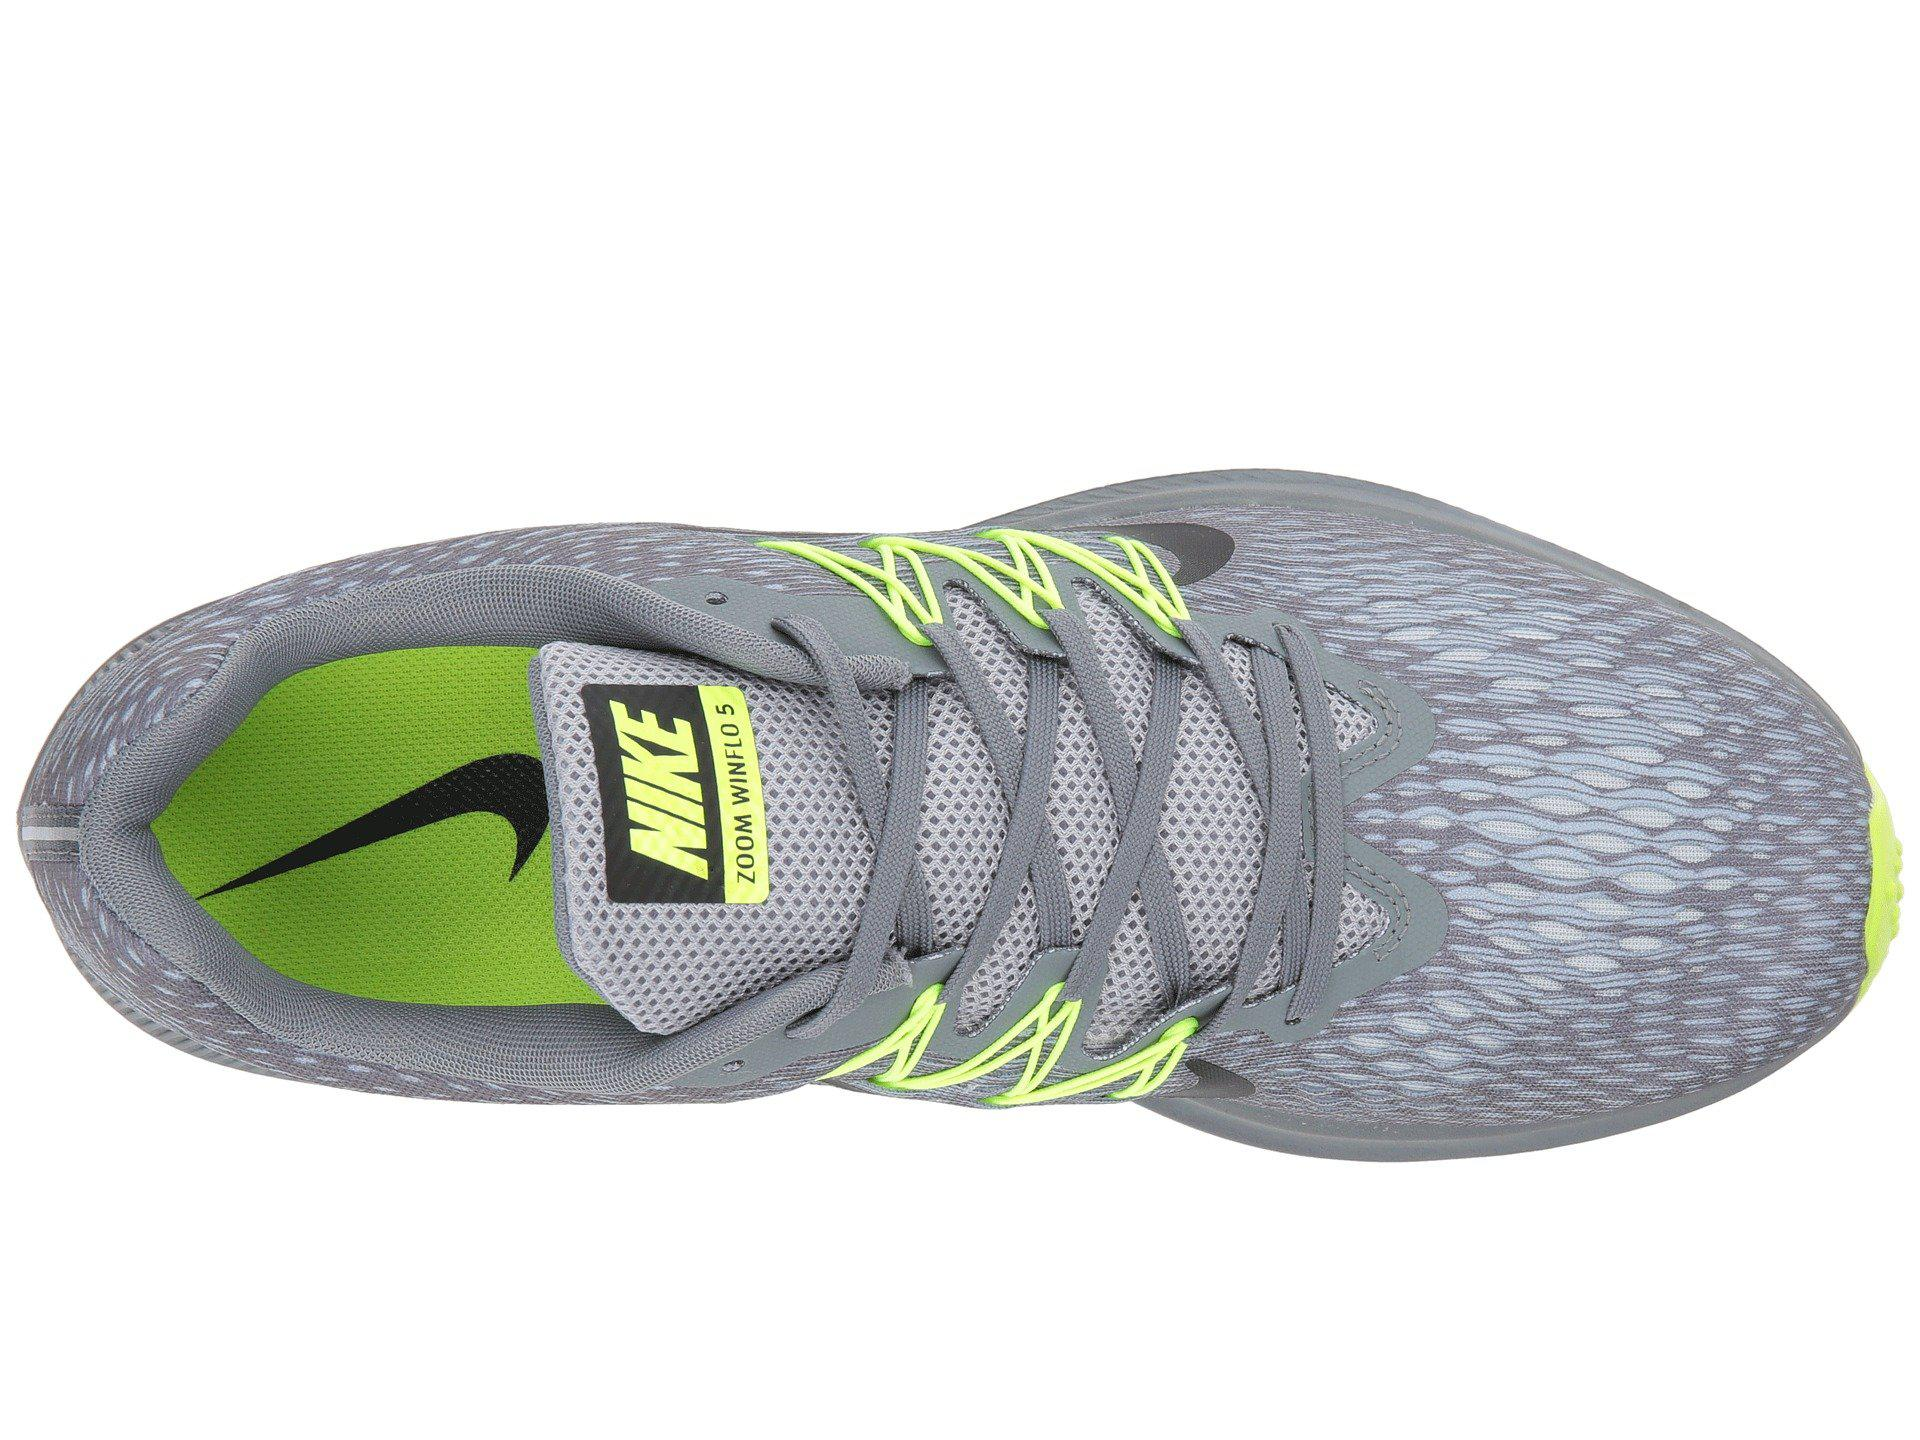 9e0a5e0f190a Nike - Gray Air Zoom Winflo 5 (black anthracite) Men s Running Shoes for.  View fullscreen